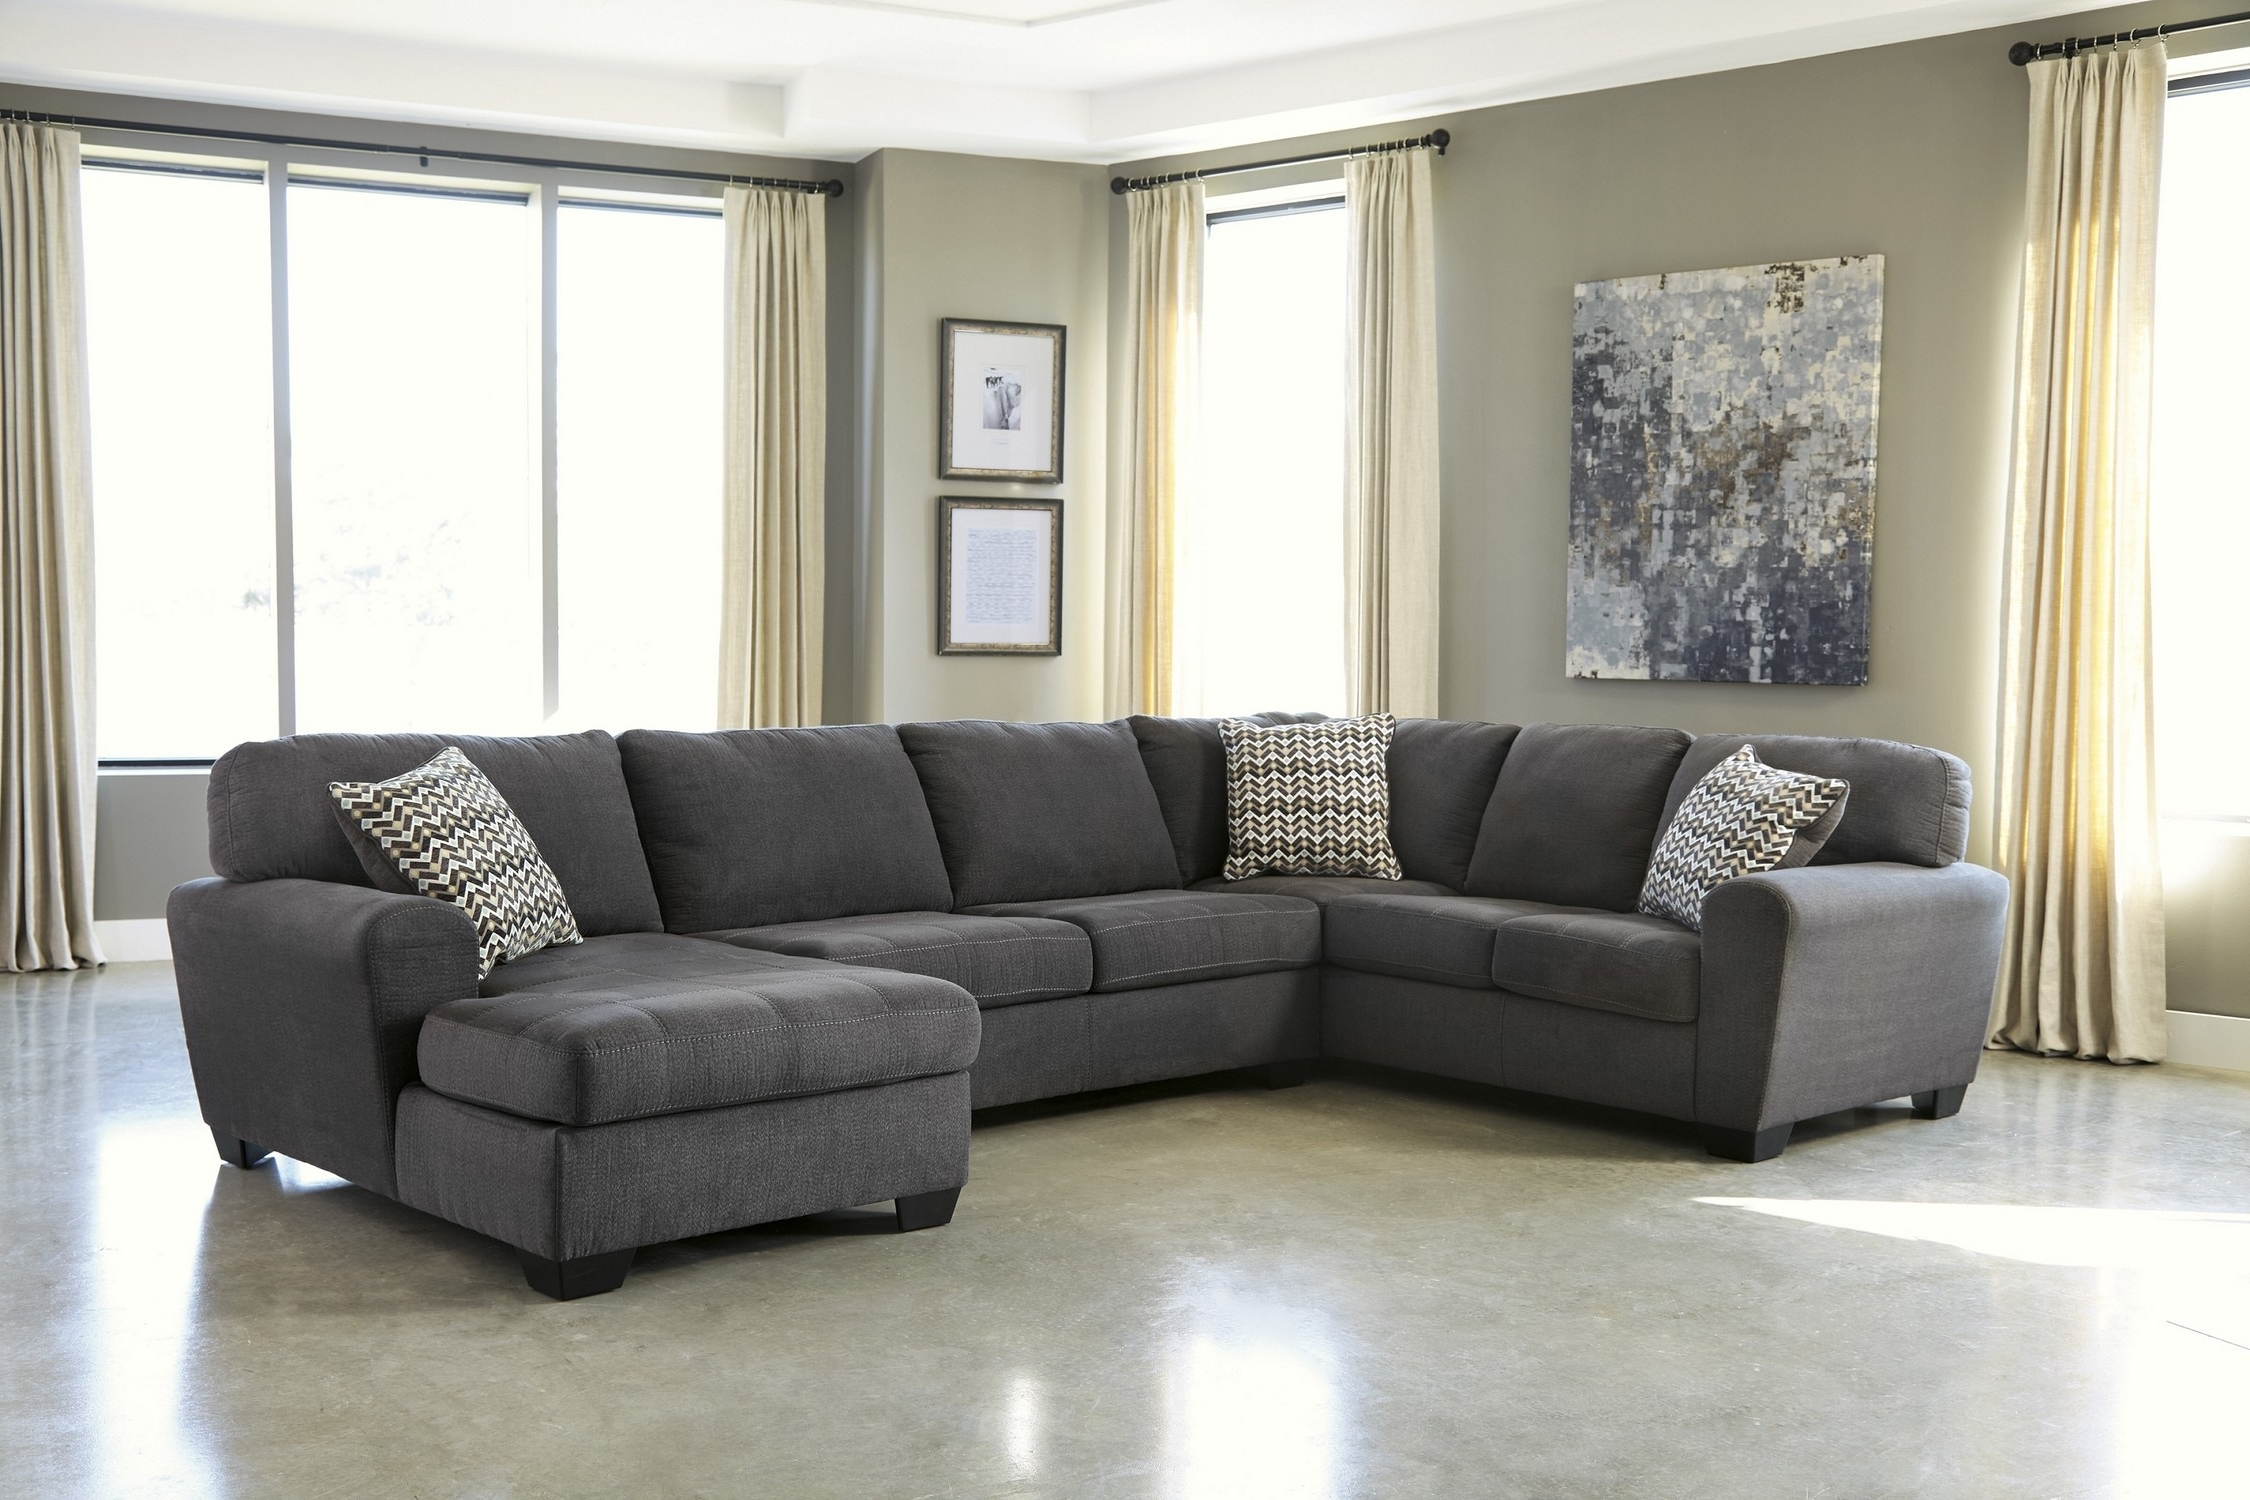 Luxury Charcoal Sectional Sofa 52 On Office Sofa Ideas With With Regard To Current Sectional Sofas Under (View 7 of 20)